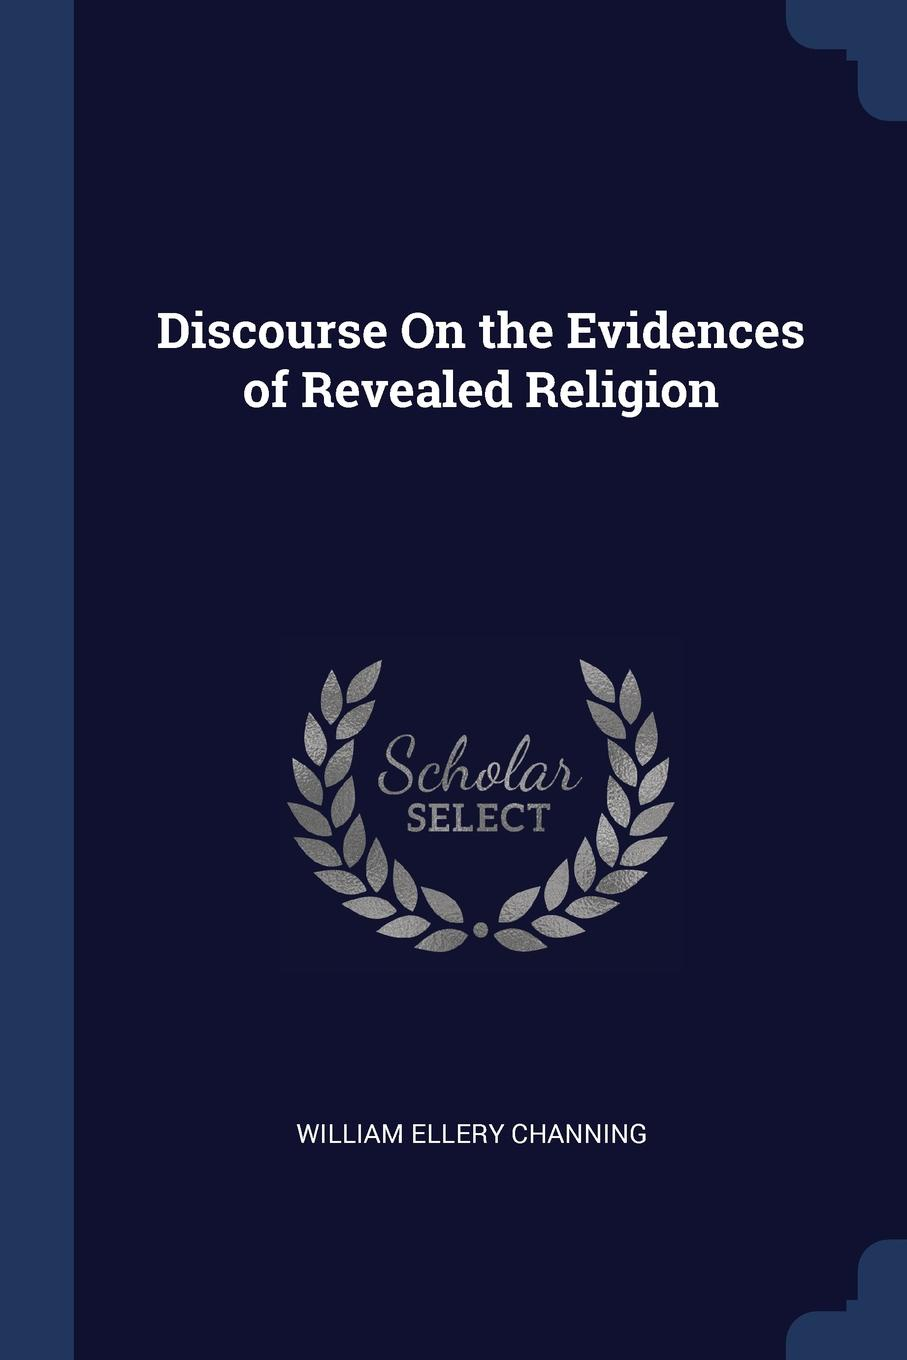 William Ellery Channing Discourse On the Evidences of Revealed Religion